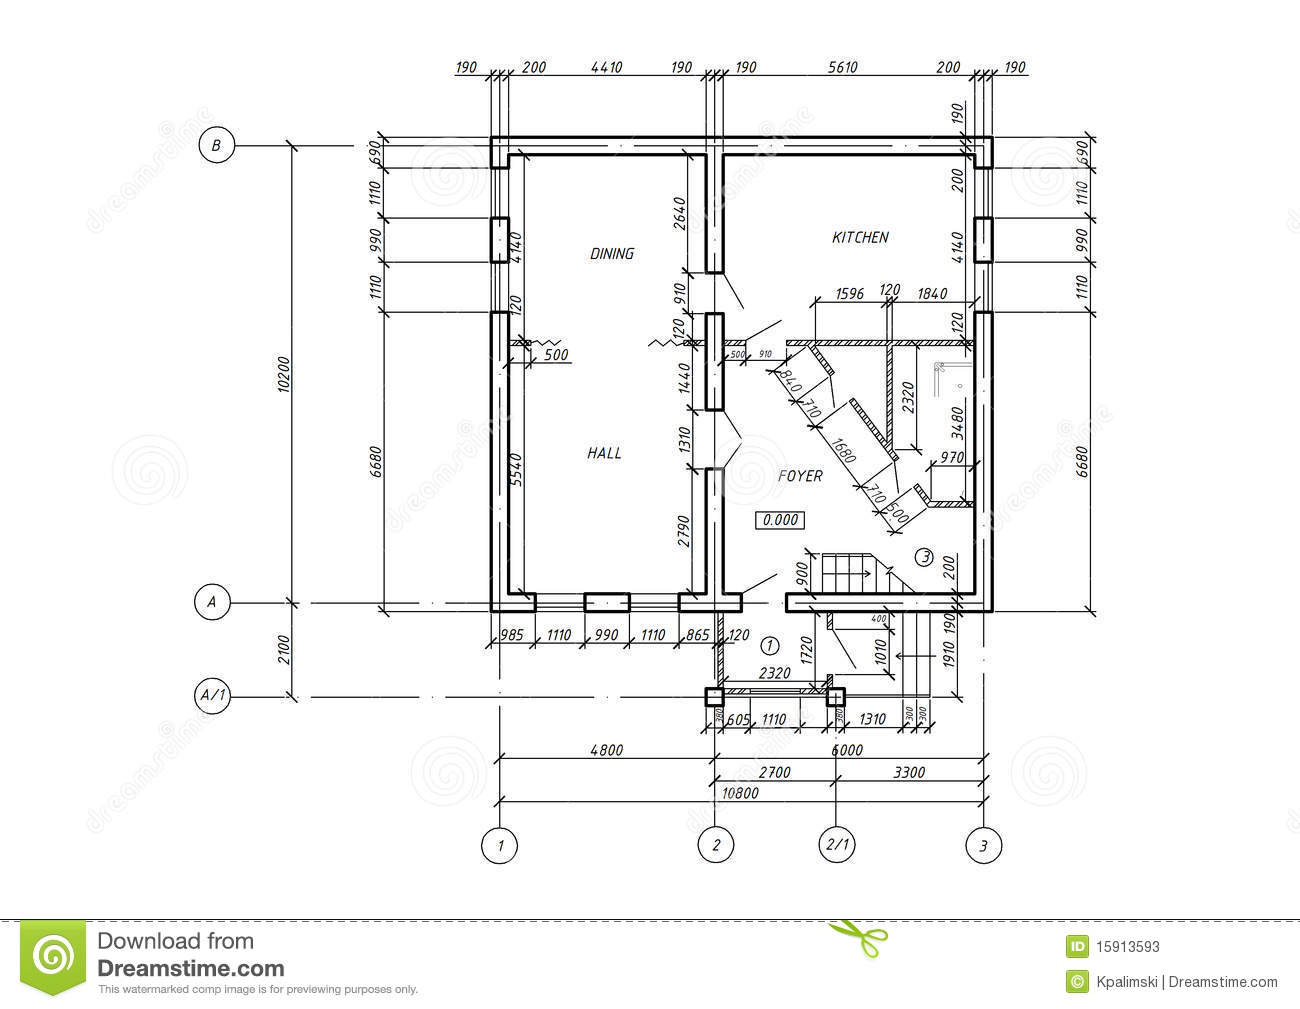 Cad architectural plan blueprint stock photos image for Architectural design plans